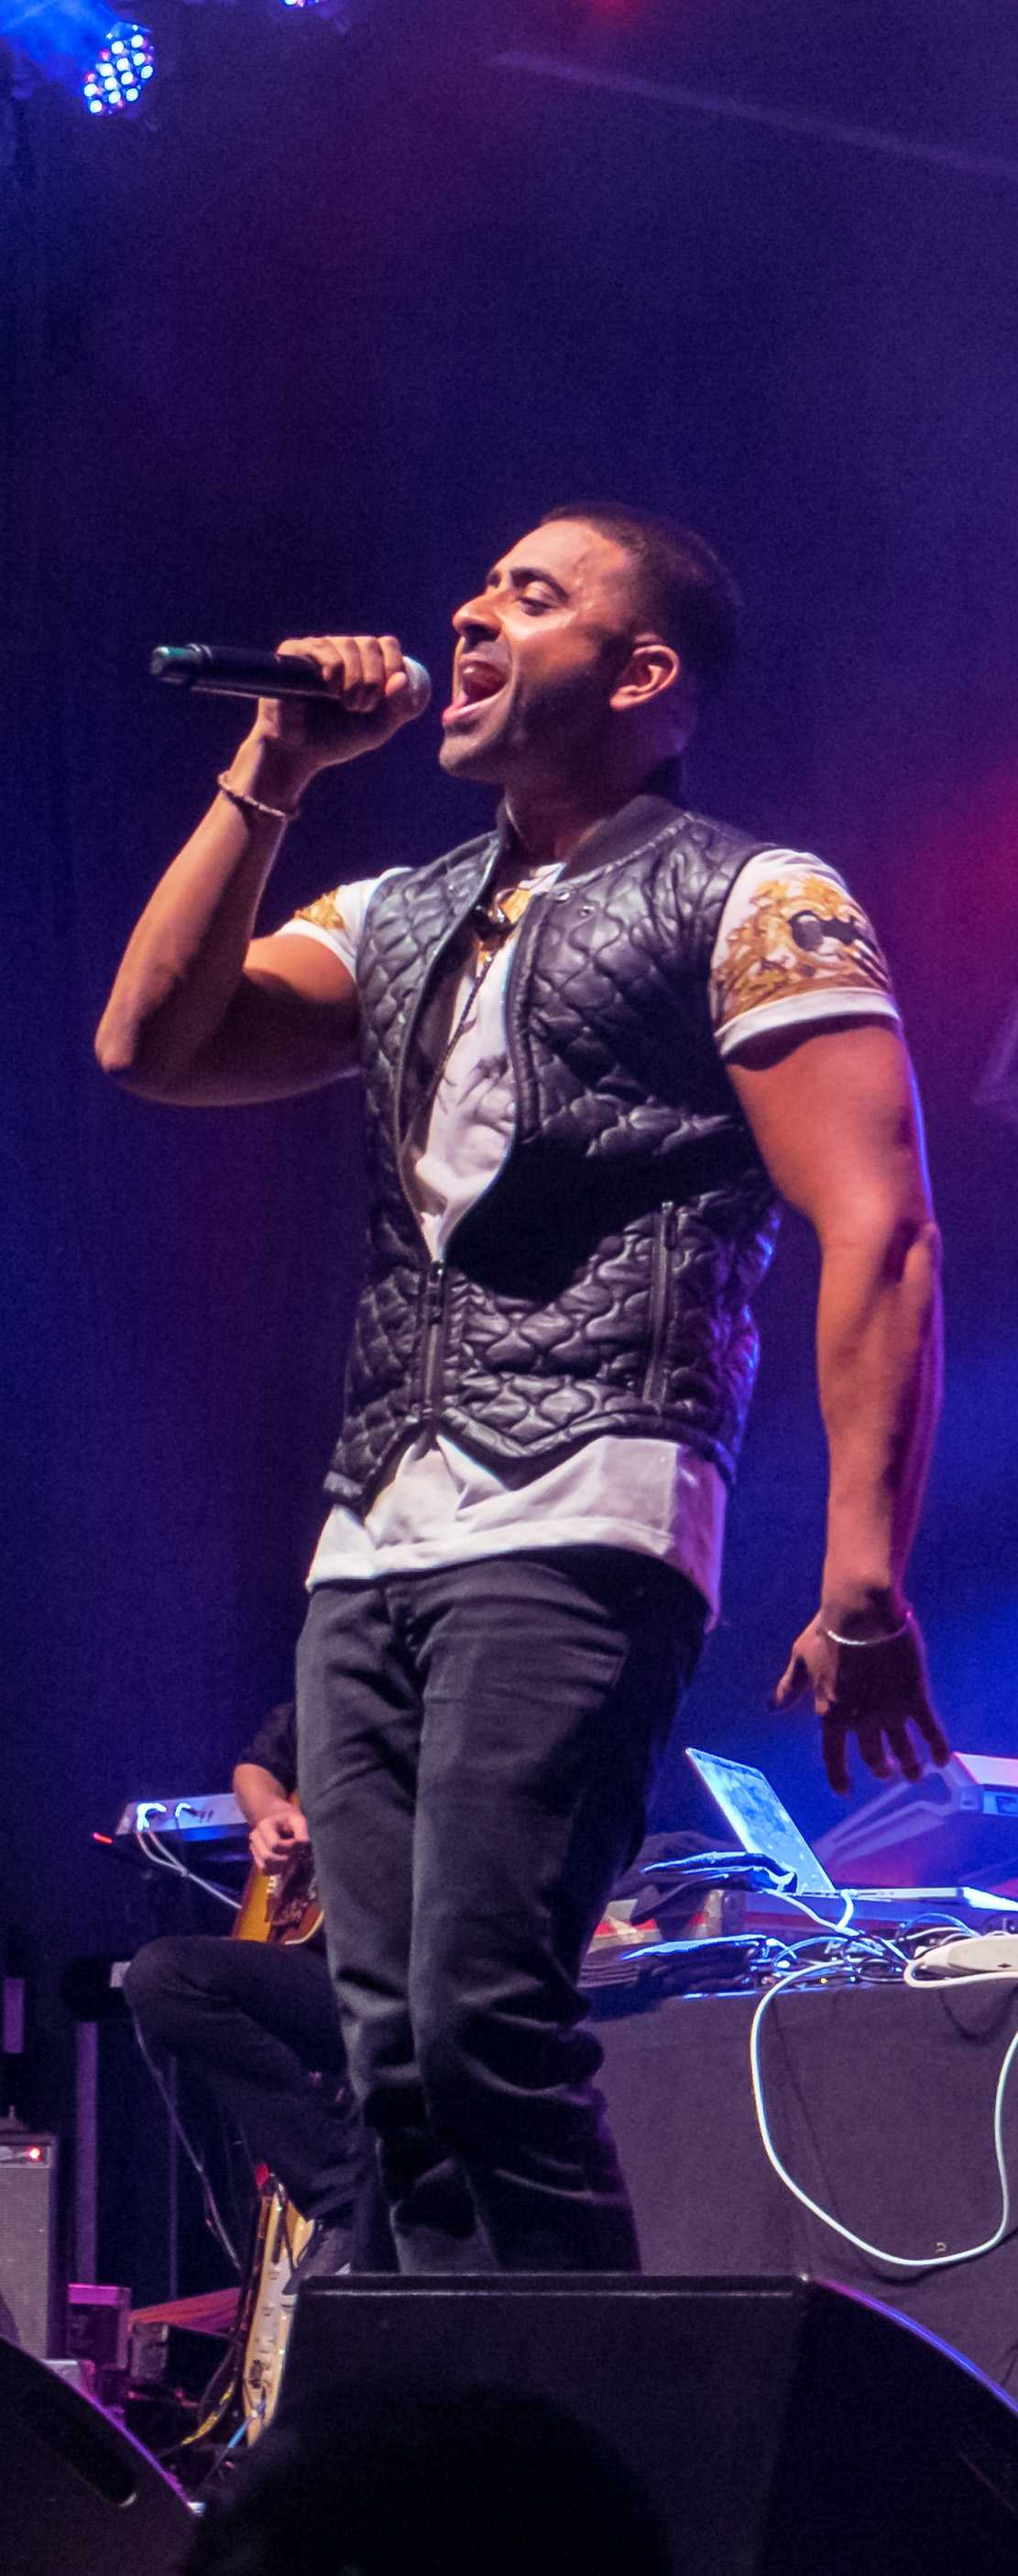 Jay Sean Performs during Owl Prowl in October. Photo by Mohammed F. Emran | Web Editor